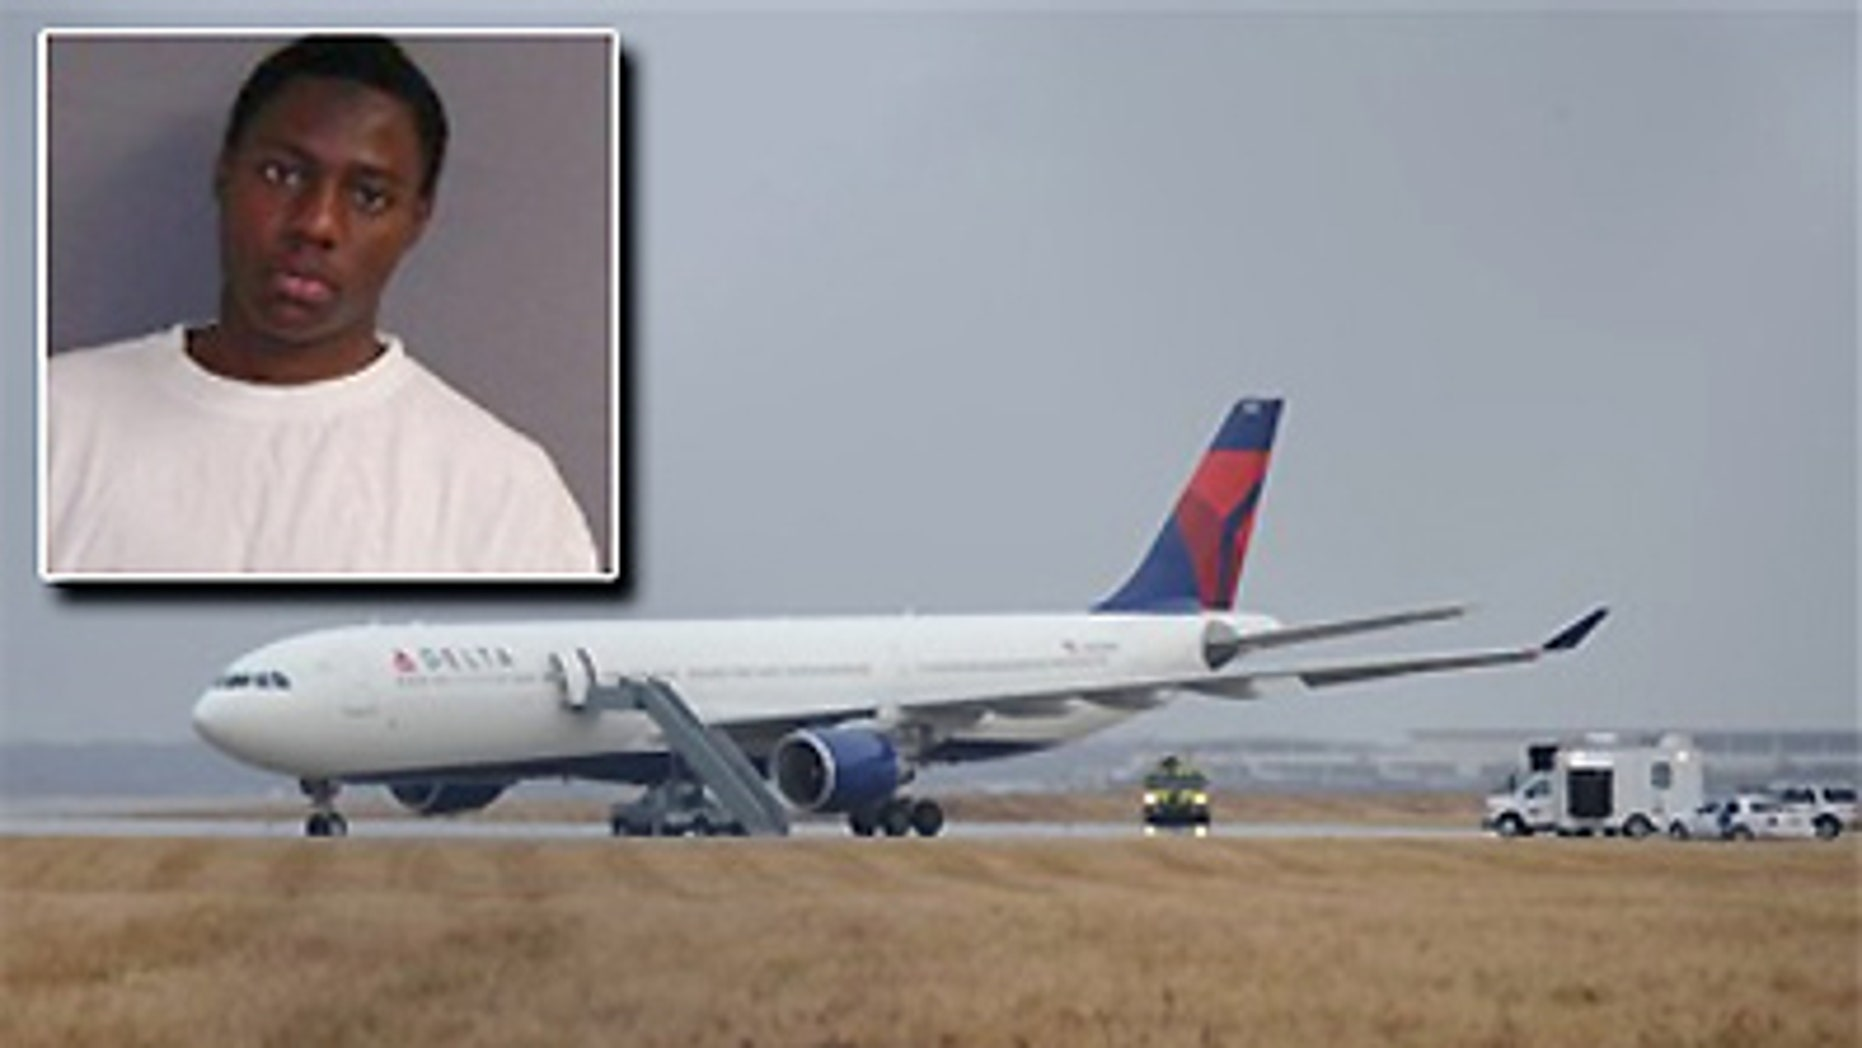 Abdulmutallab (pictured) is accused of trying to set off a bomb hidden in his underwear aboard a flight from Amsterdam to Detroit last year.